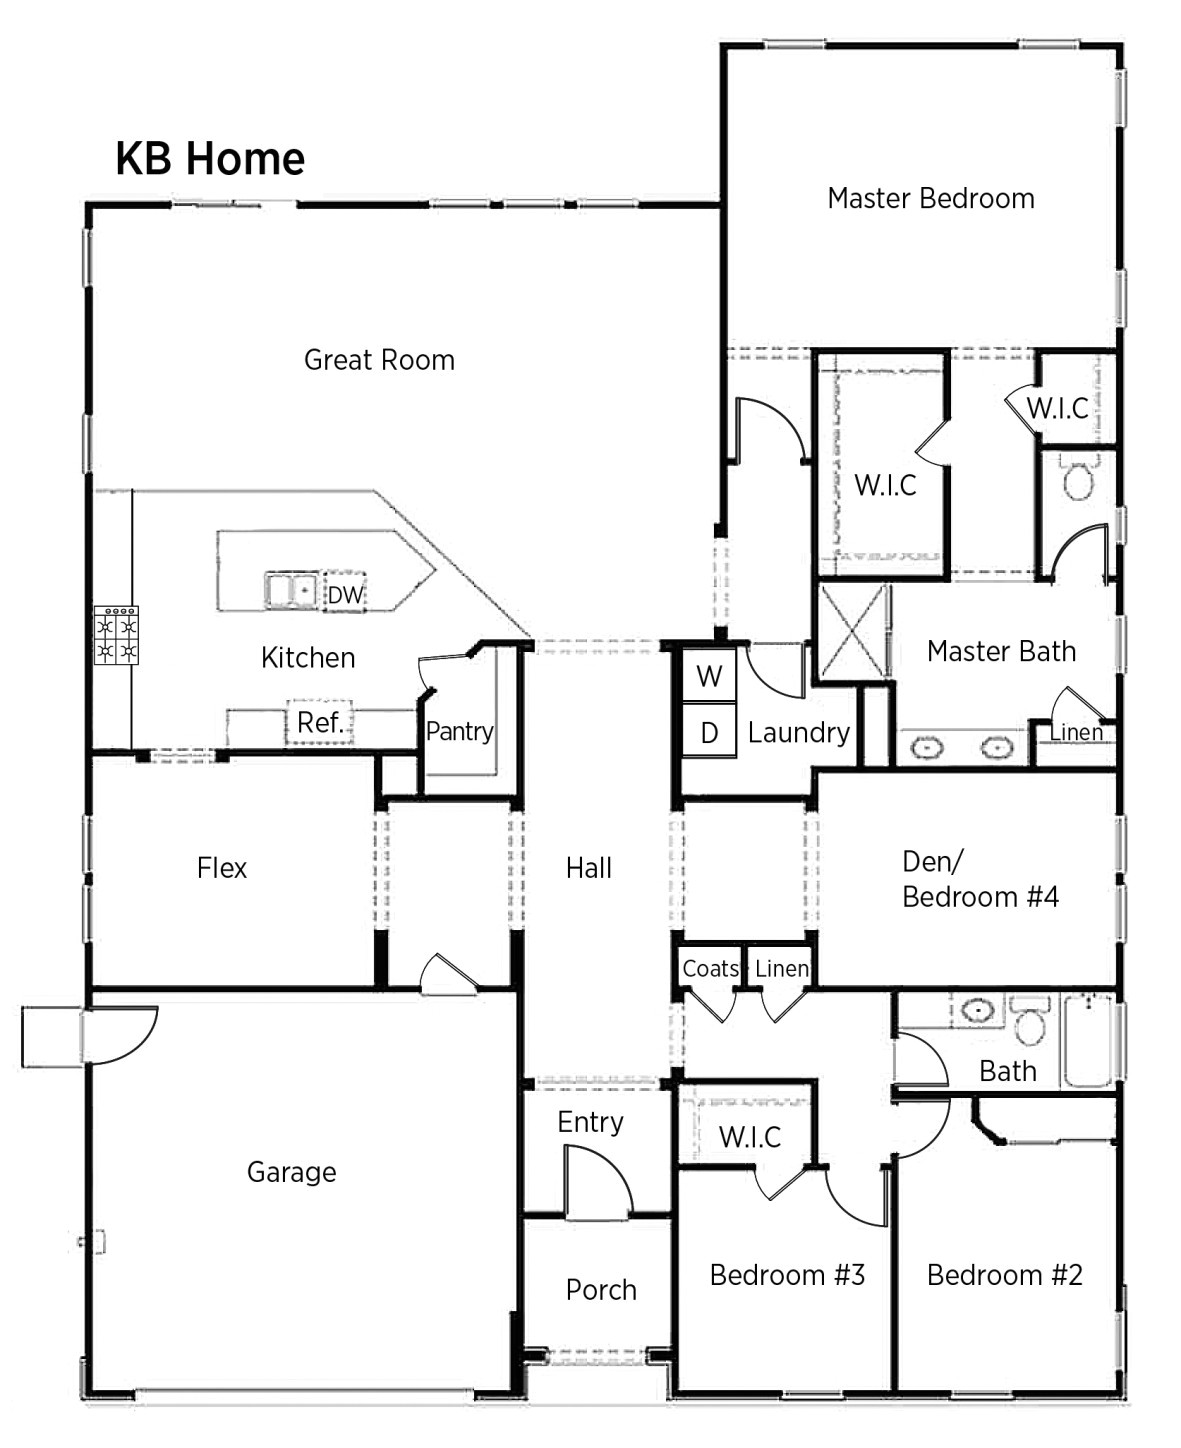 kb homes floor plans inspirational kb homes floor plans images home fixtures decoration ideas